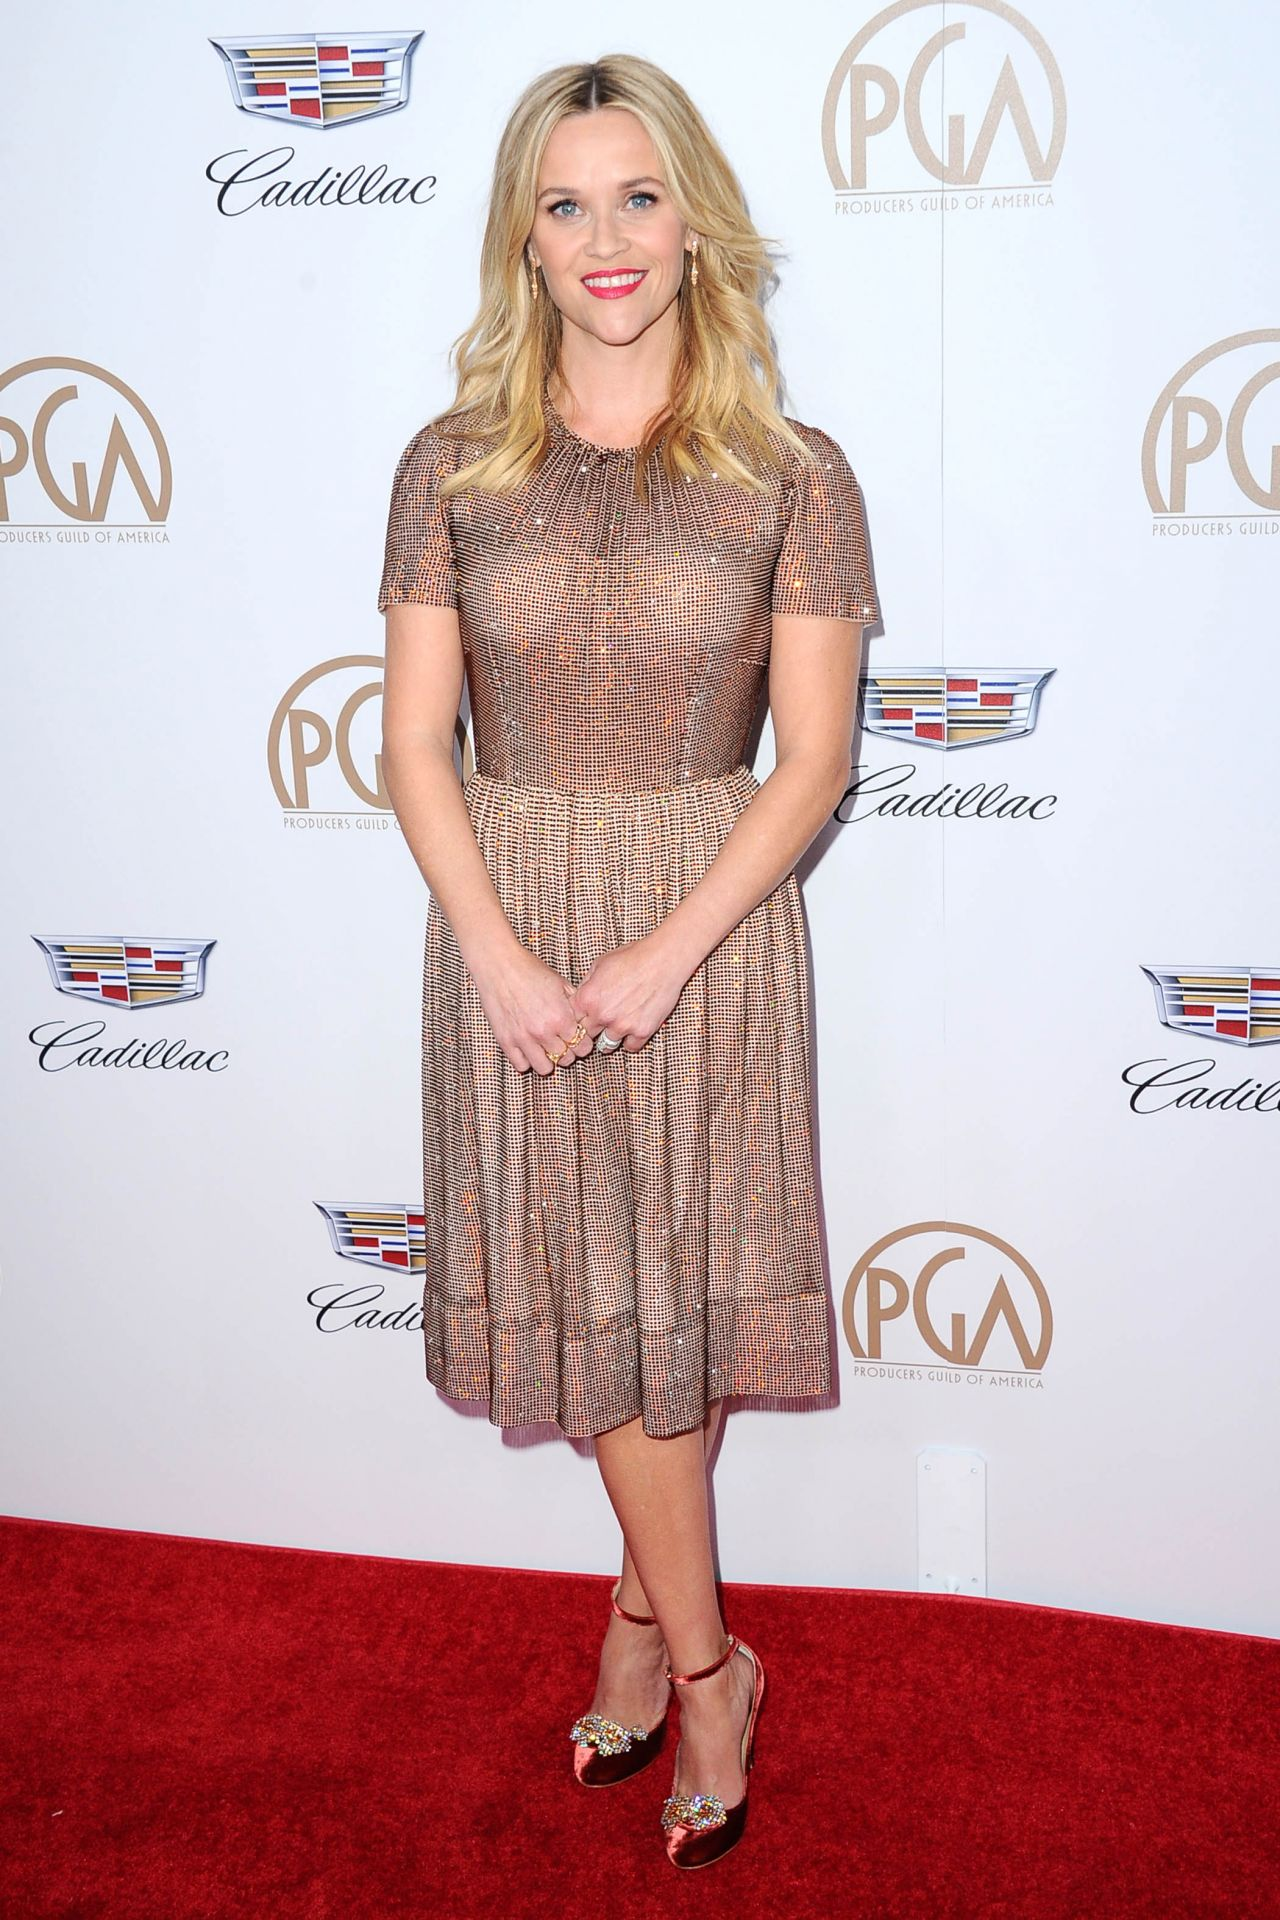 http://celebmafia.com/wp-content/uploads/2018/01/reese-witherspoon-2018-pga-in-beverly-hills-5.jpg